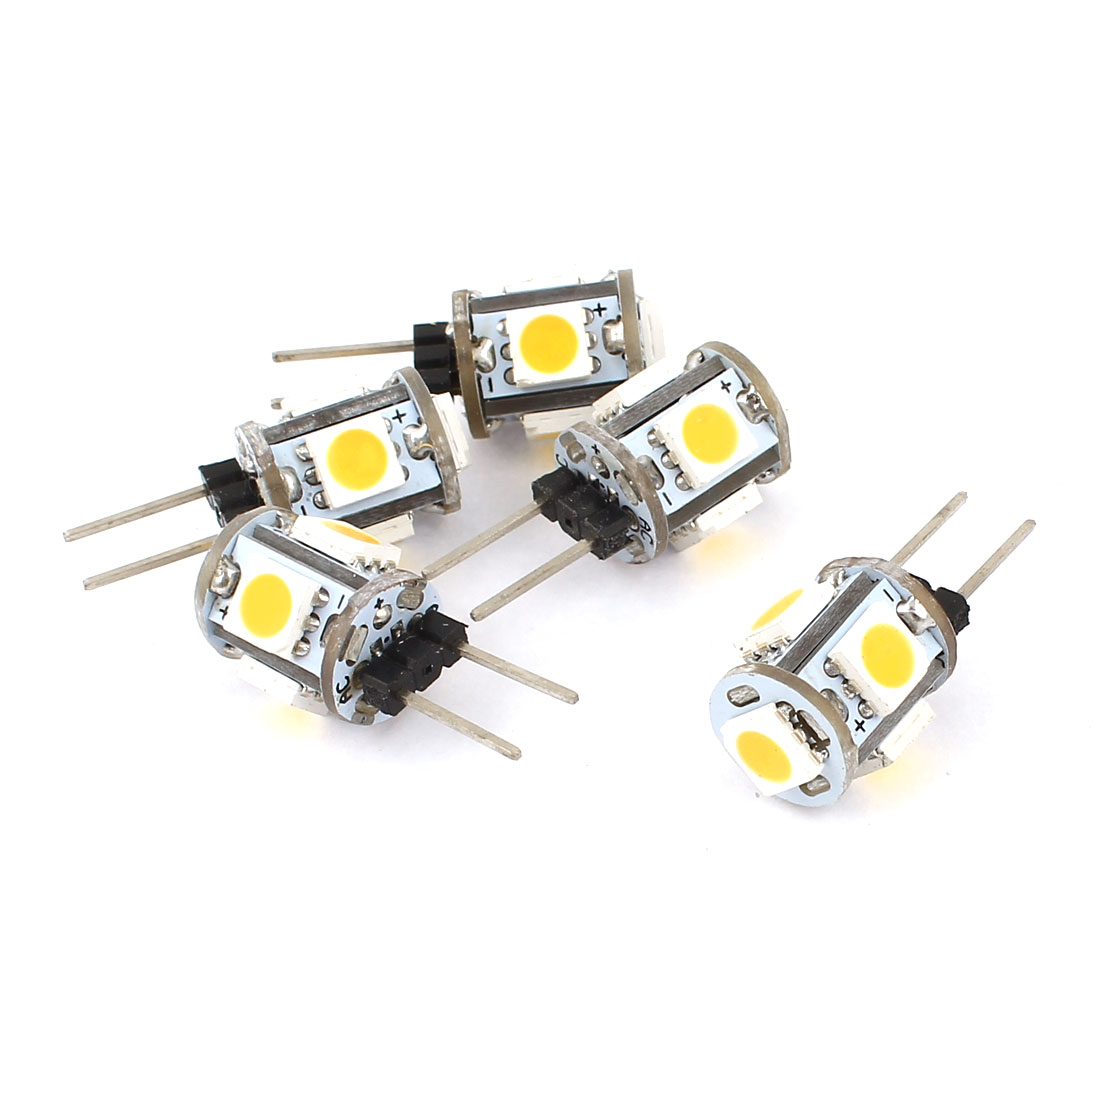 5 x 60-80LM Energy Saving G4 5050 SMD 5 LED Light Bulb Lamp Warm White